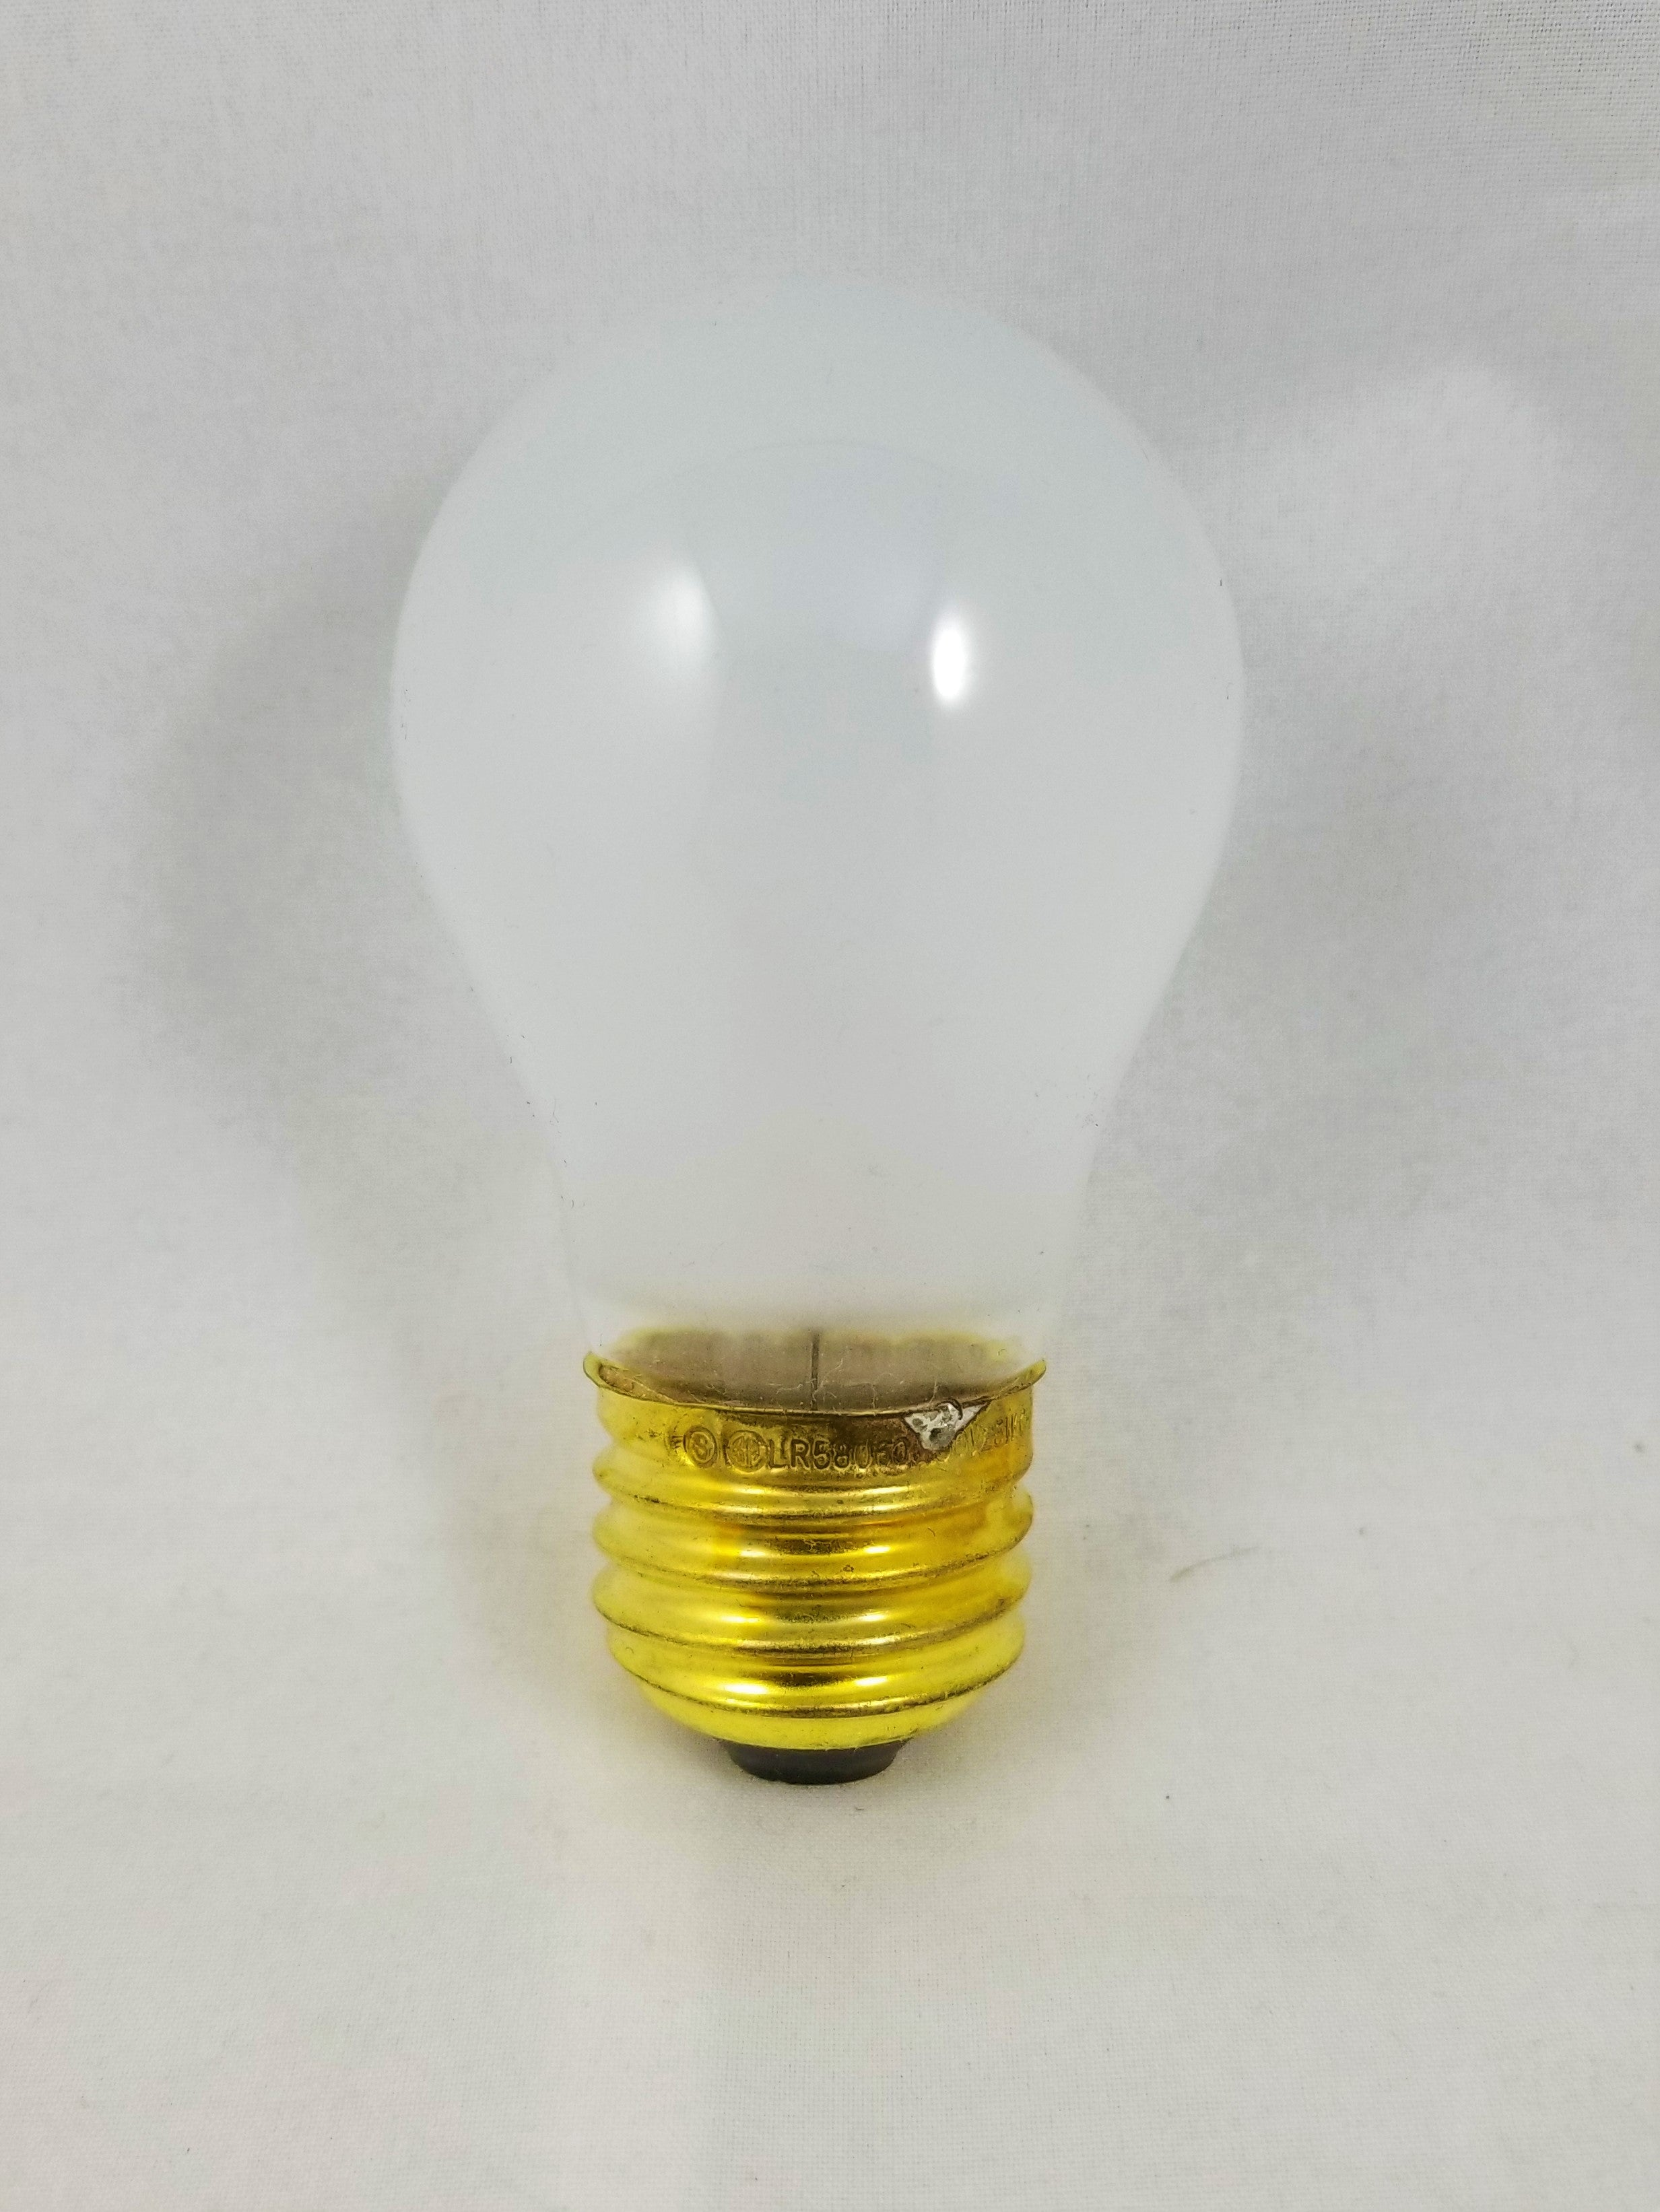 25W Medium Base Frosted Appliance Bulb 130 VOLT